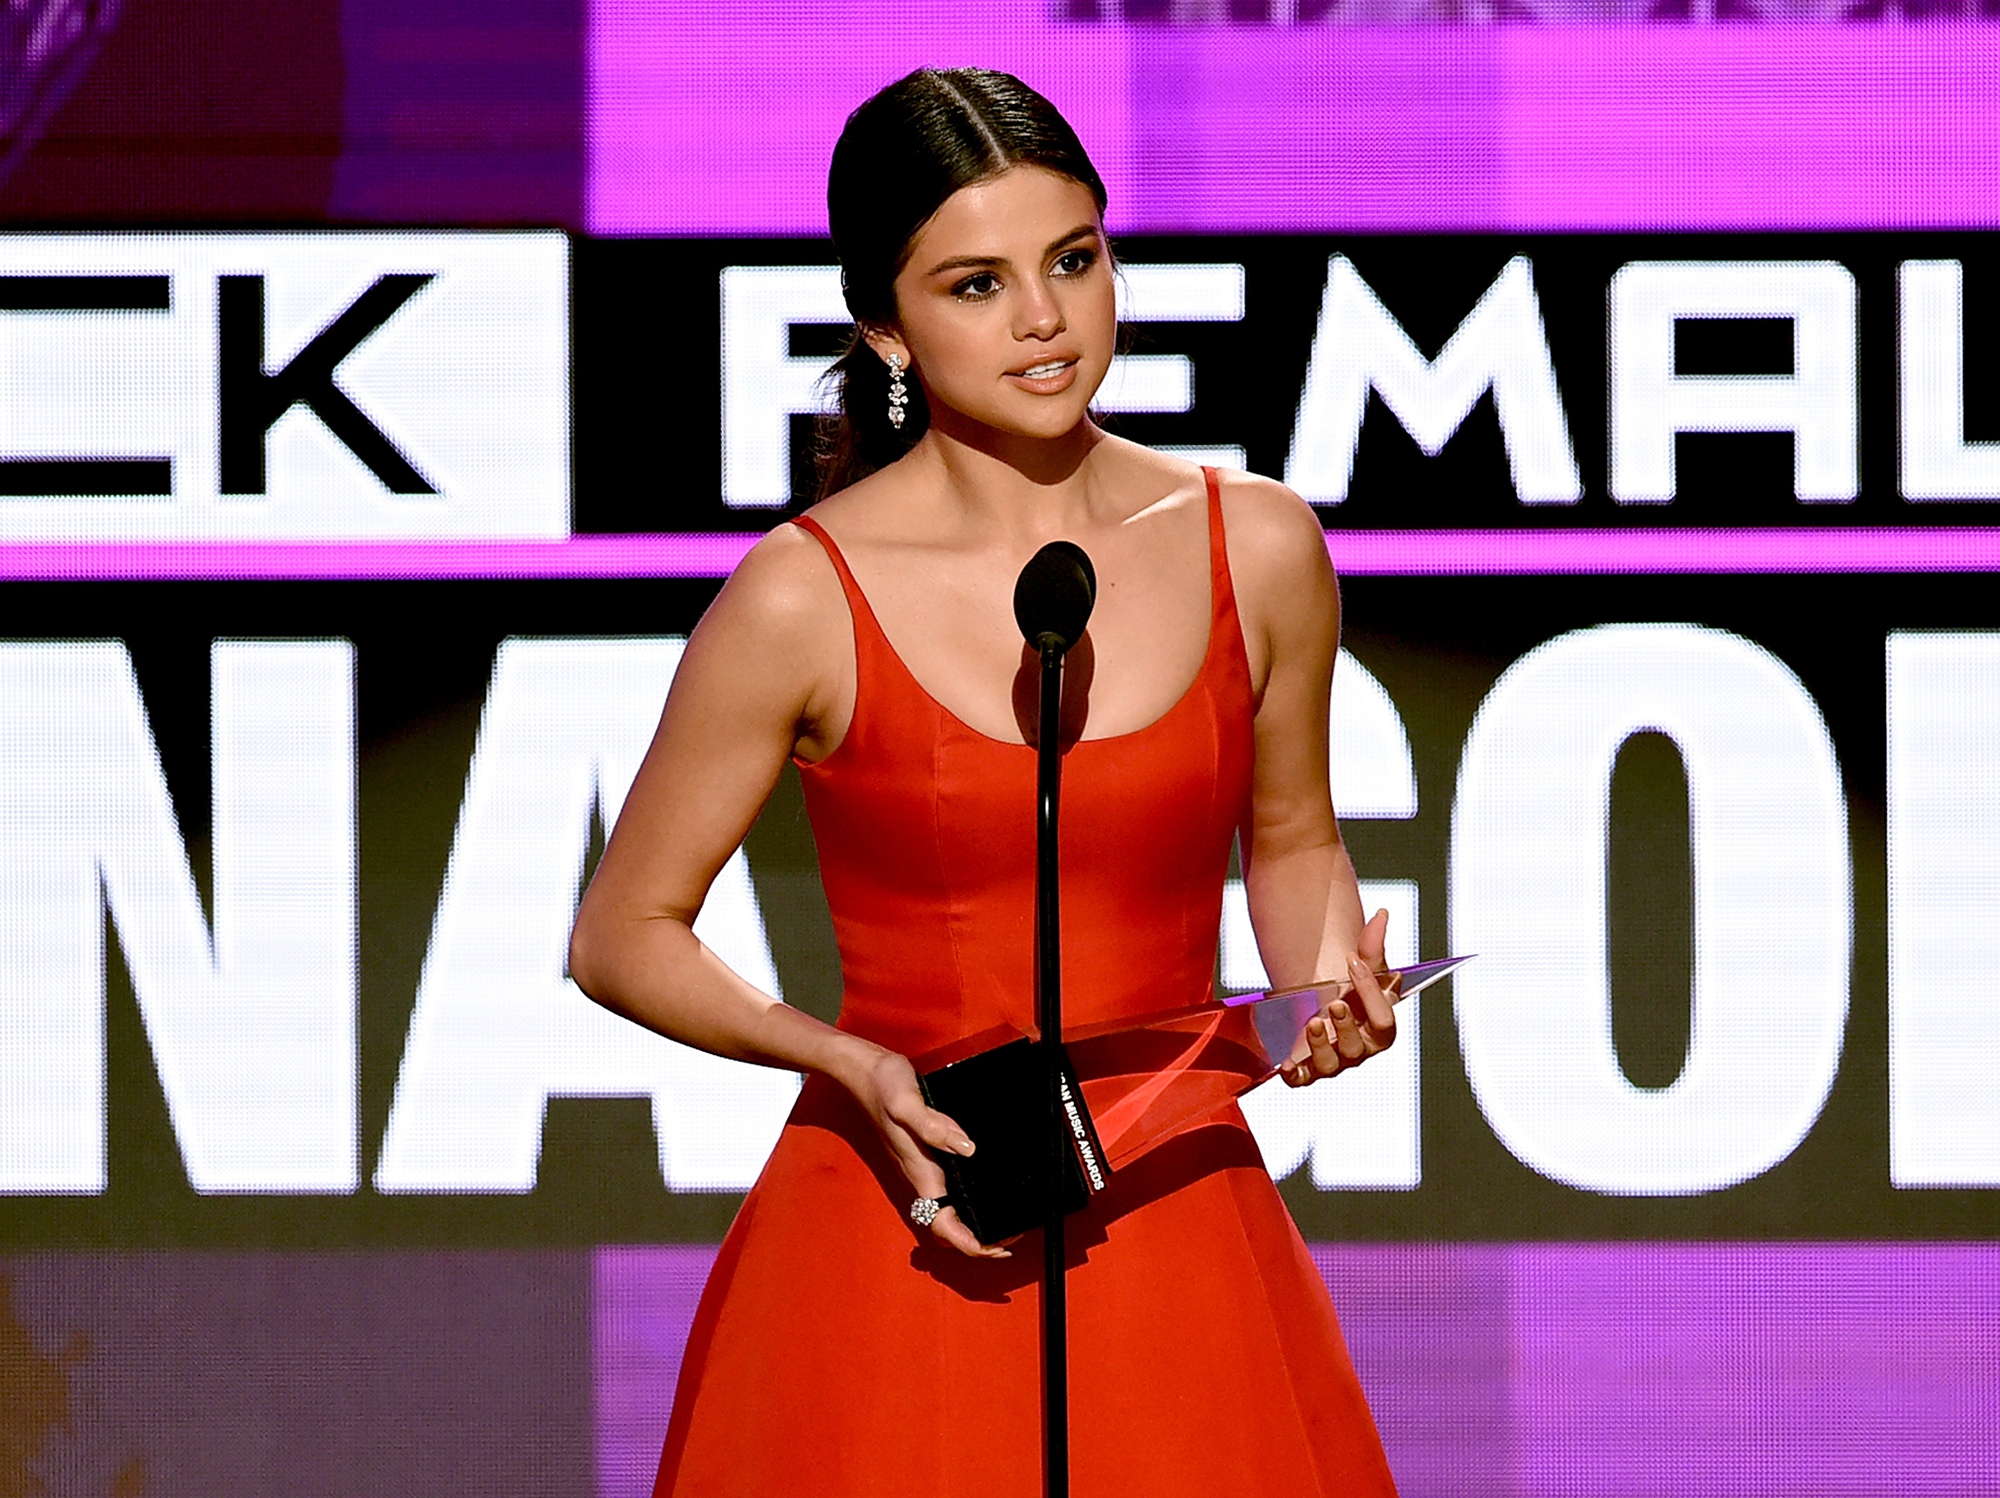 """Selena Gomez's Mental Health Battle In Her Own Words - Gomez shared an emotional message with fans on Thanksgiving Day in 2016, admitting it was her """"hardest"""" but """"most rewarding"""" year yet. """"I've finally fought the fight of not 'being enough.' I have only wanted to reflect the love you guys have given me for years and show how important it is to take care of YOU,"""" she wrote."""